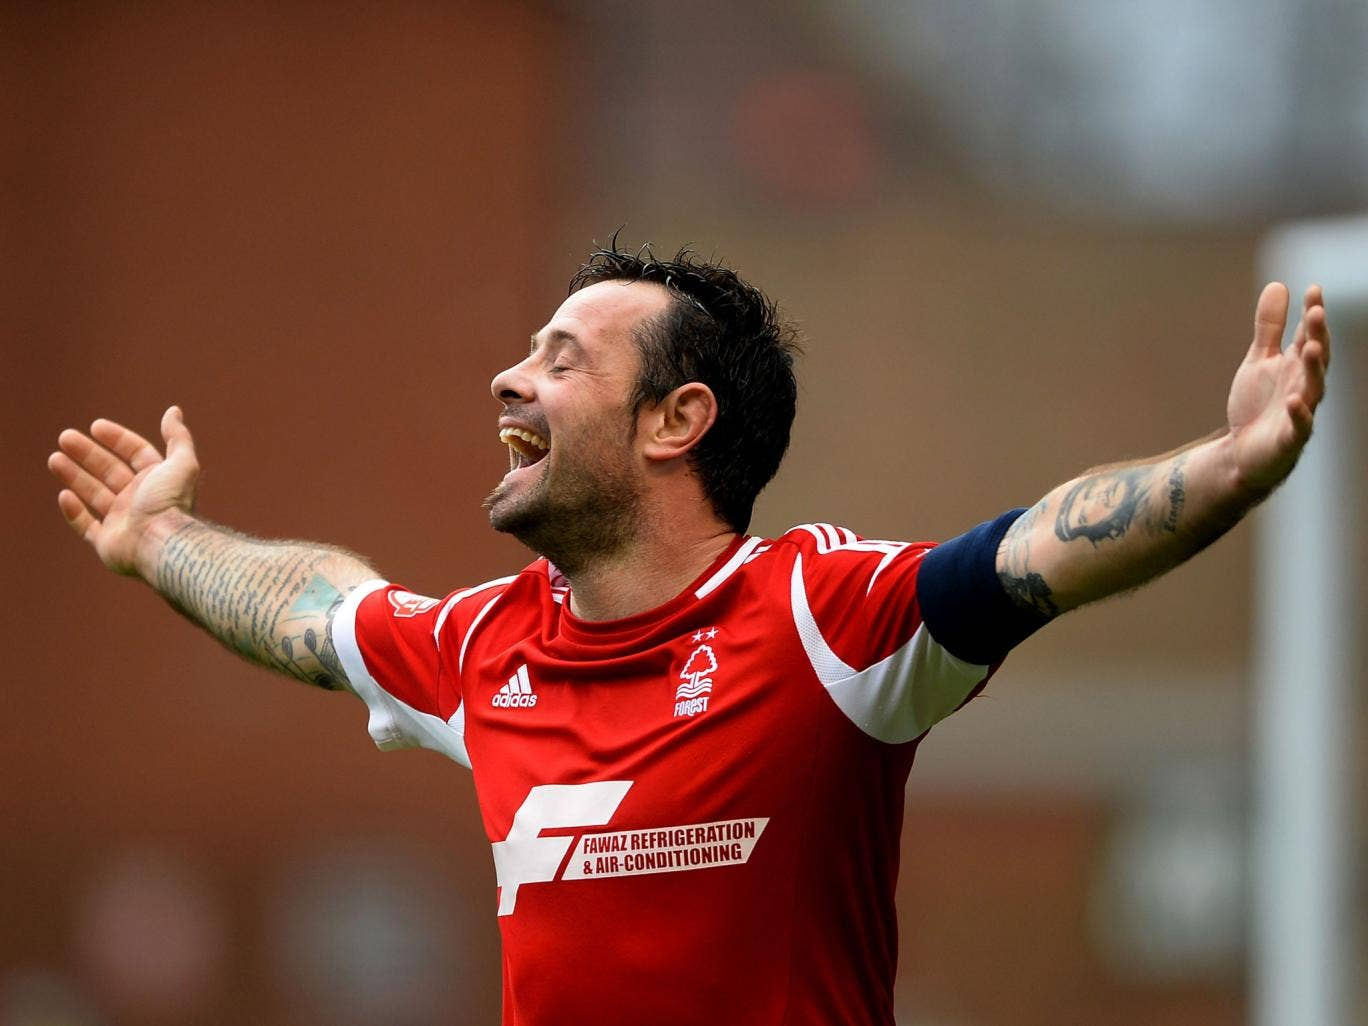 Andy Reid celebrates during Nottingham Forest's 5-0 FA Cup win over West Ham